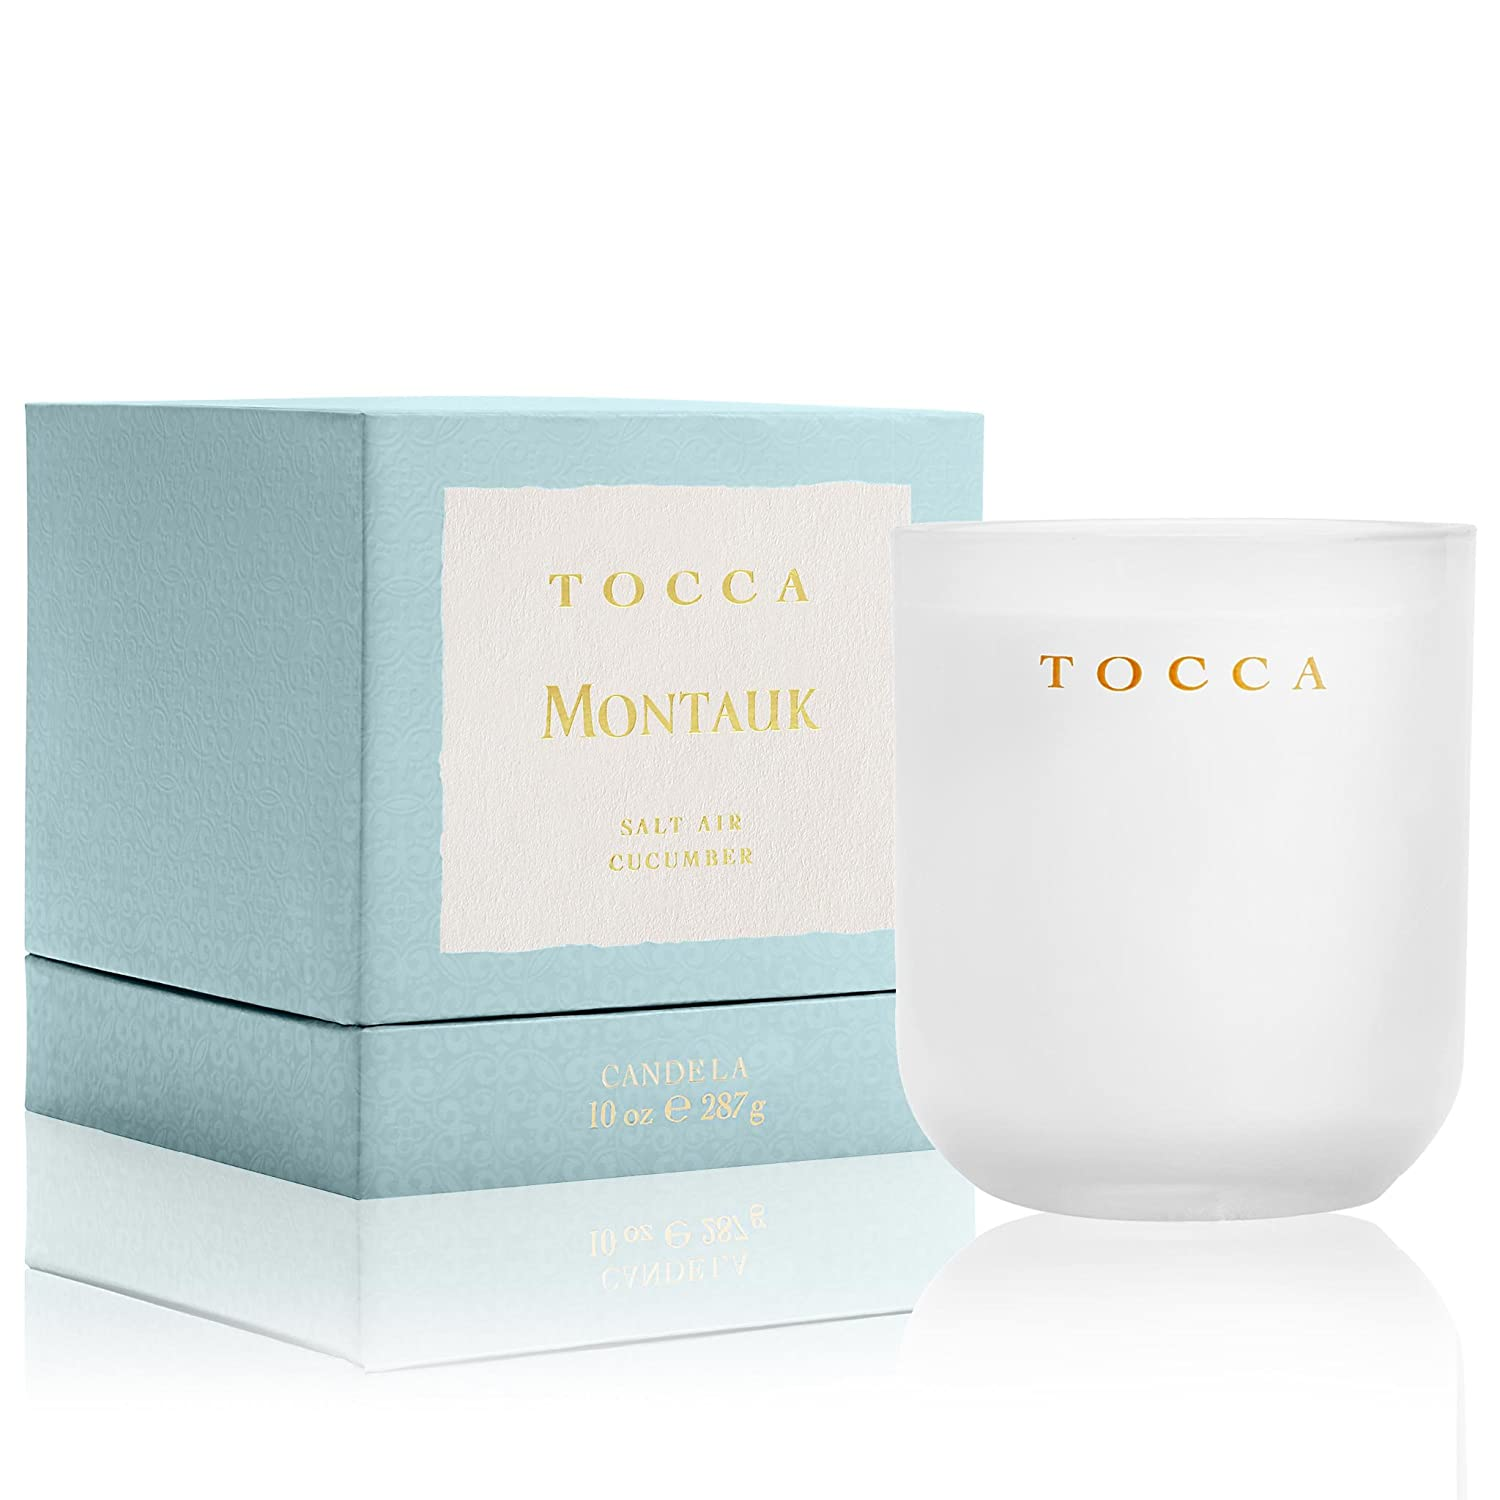 Tocca Montauk Candelina Salt Air Cucumber Scented Candle TB0077